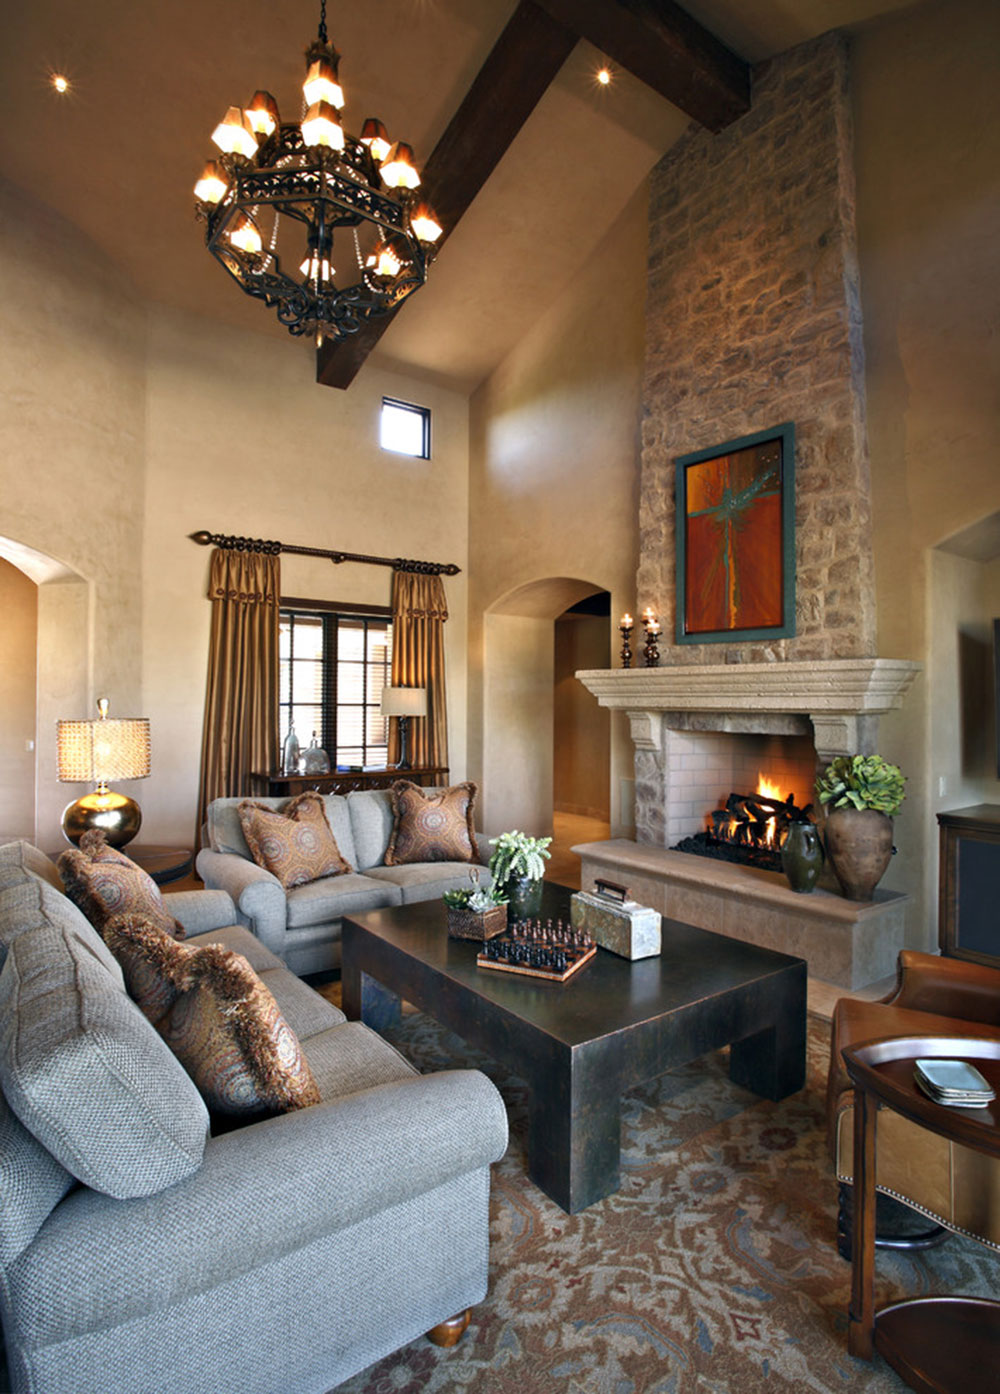 Fireplace Mantel Decorating Ideas For A Cozy Home - Fireplace-mantel-decor-ideas-home